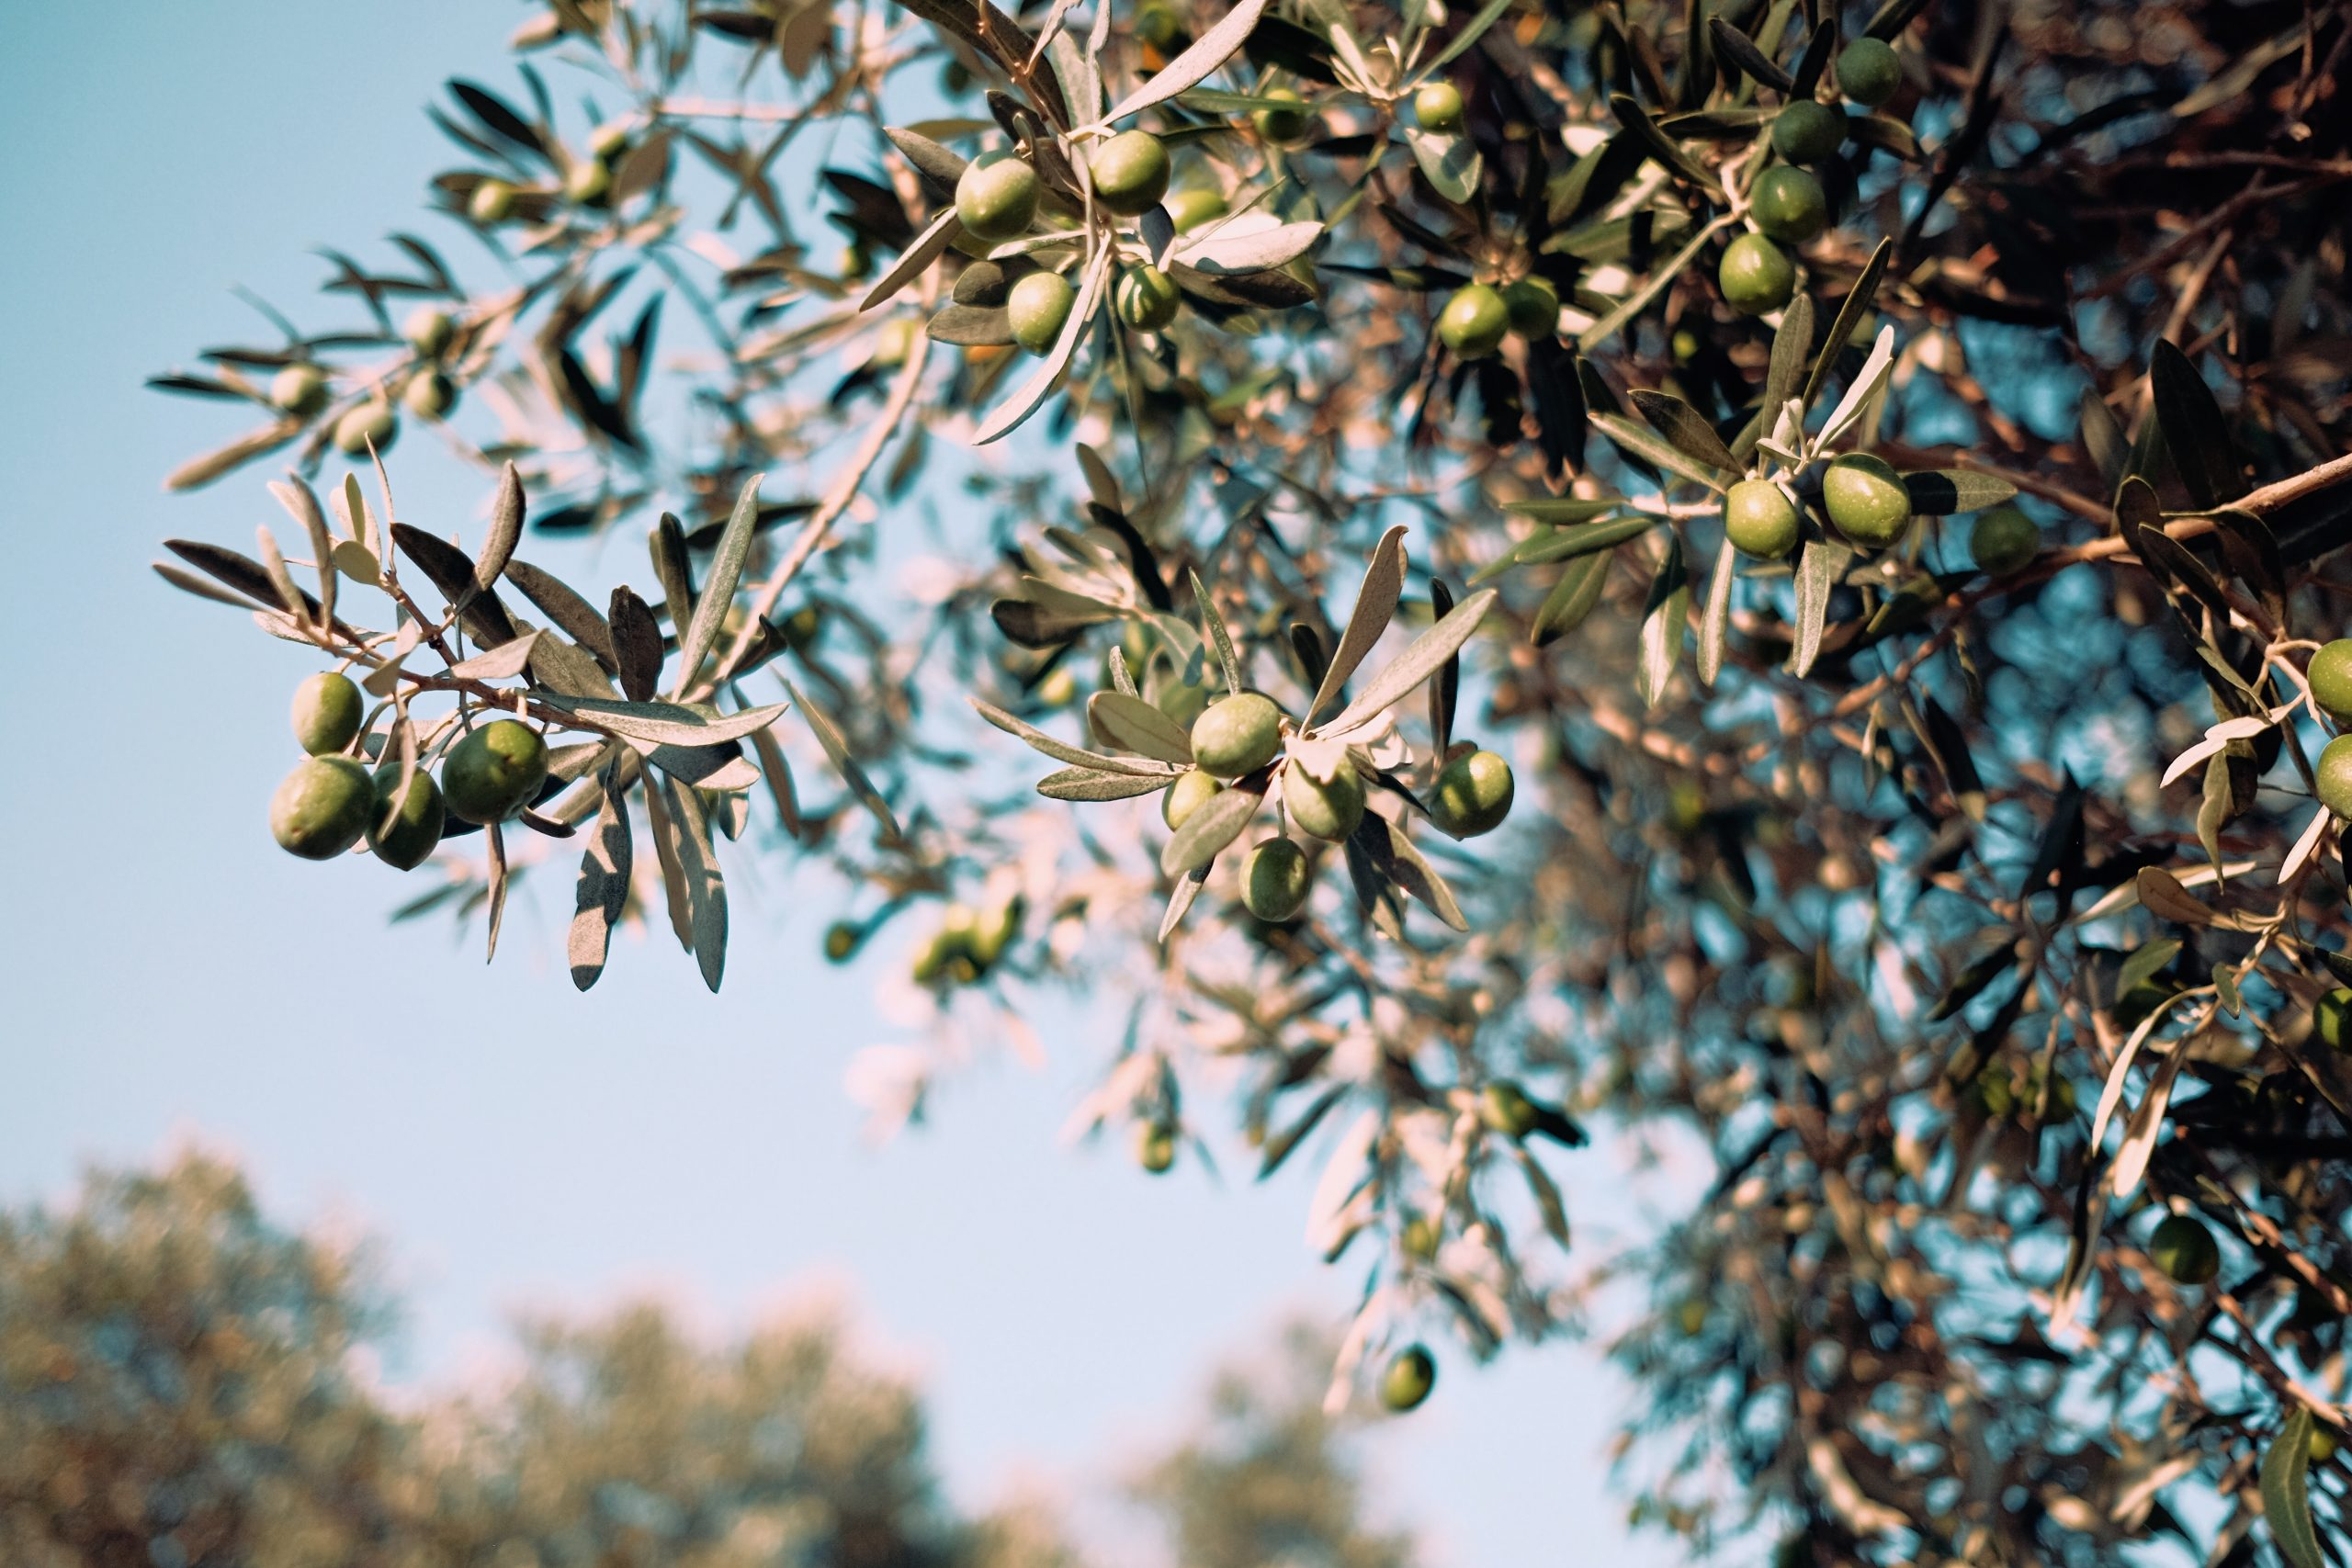 UK Olive Oil Market in 2020 and Turkish Olive Oil in the UK